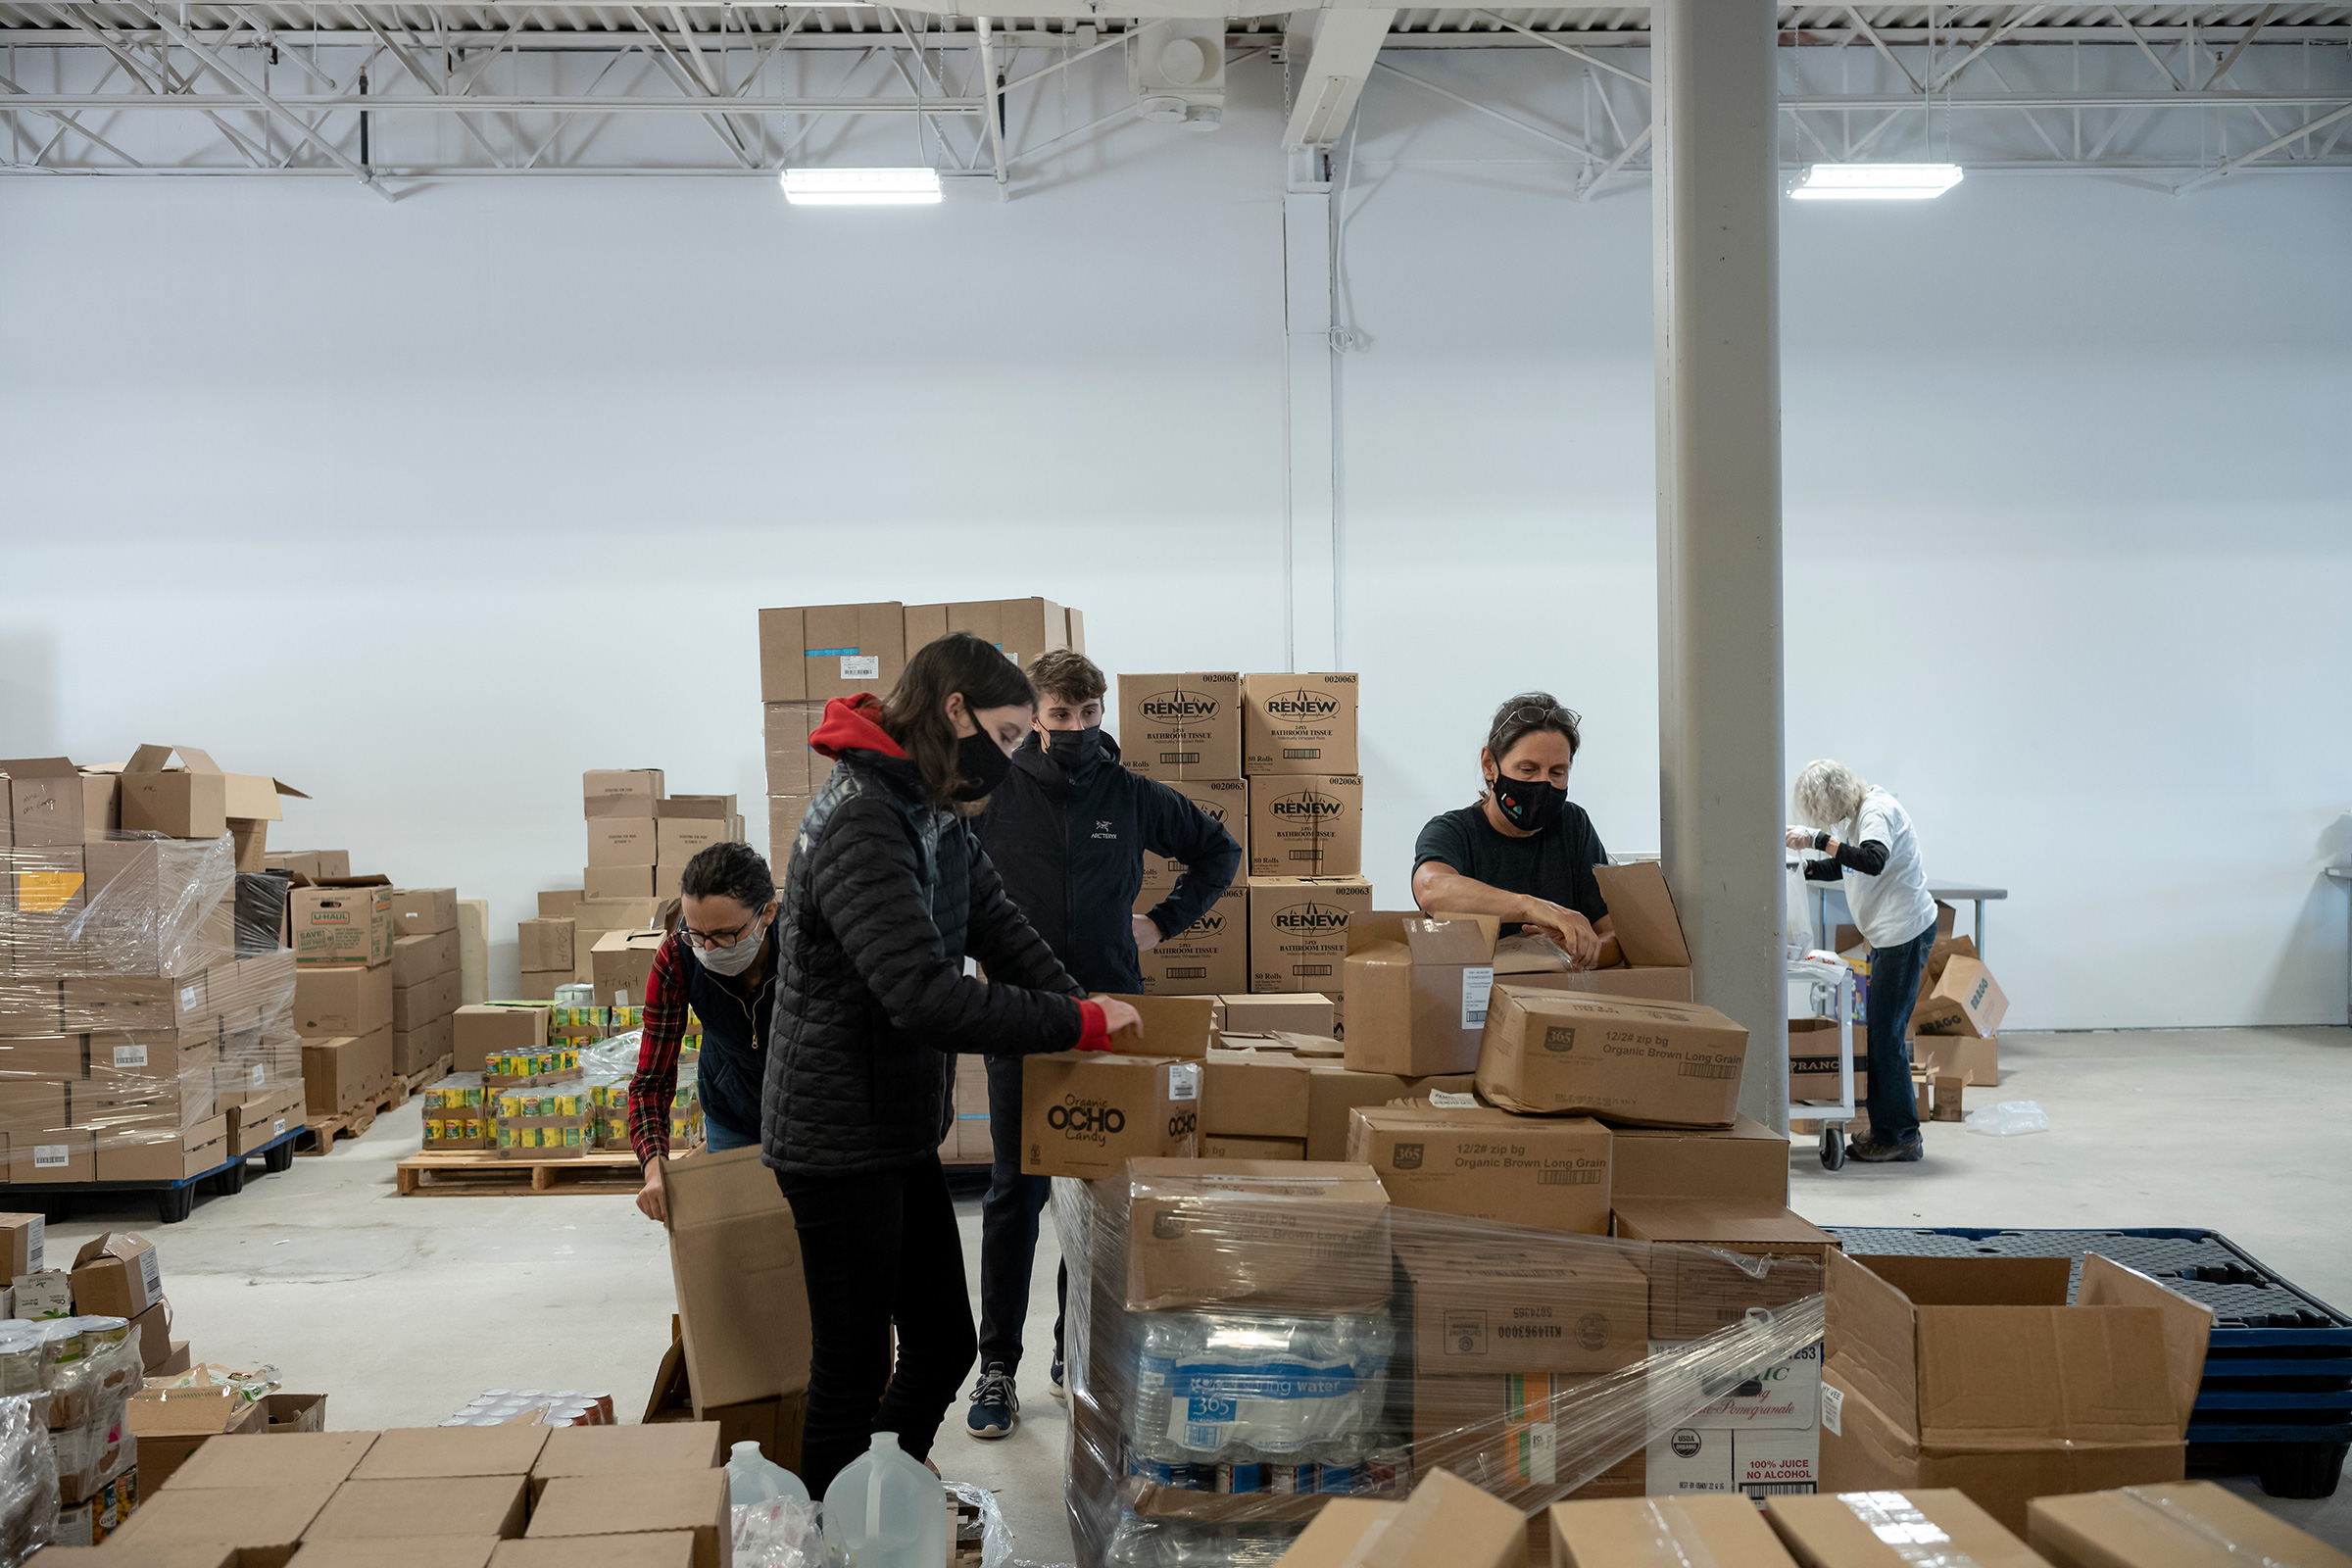 Staff and volunteers prepare food for distribution at the new CommUnity Crisis Services and Food Bank in Iowa City on Nov. 17.